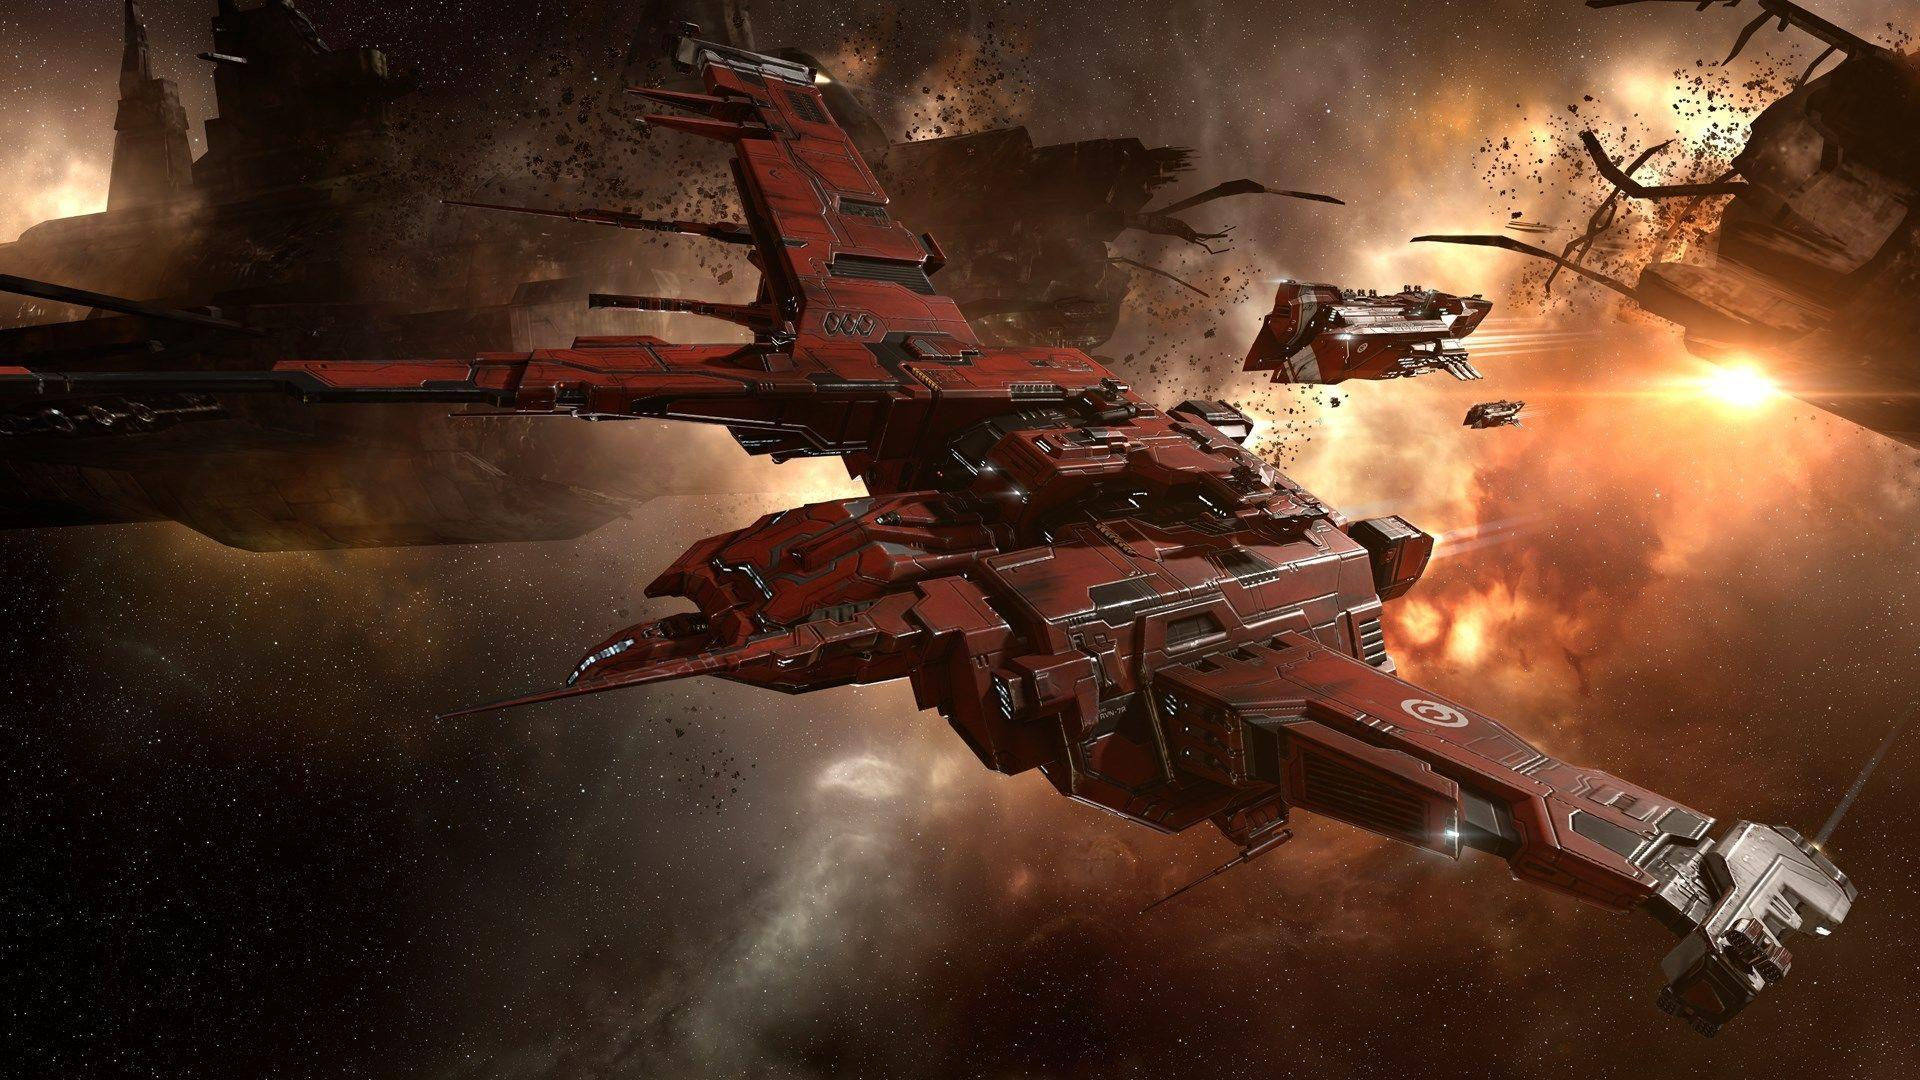 Image - I used to love this game lol. #eveonline  - Post 296